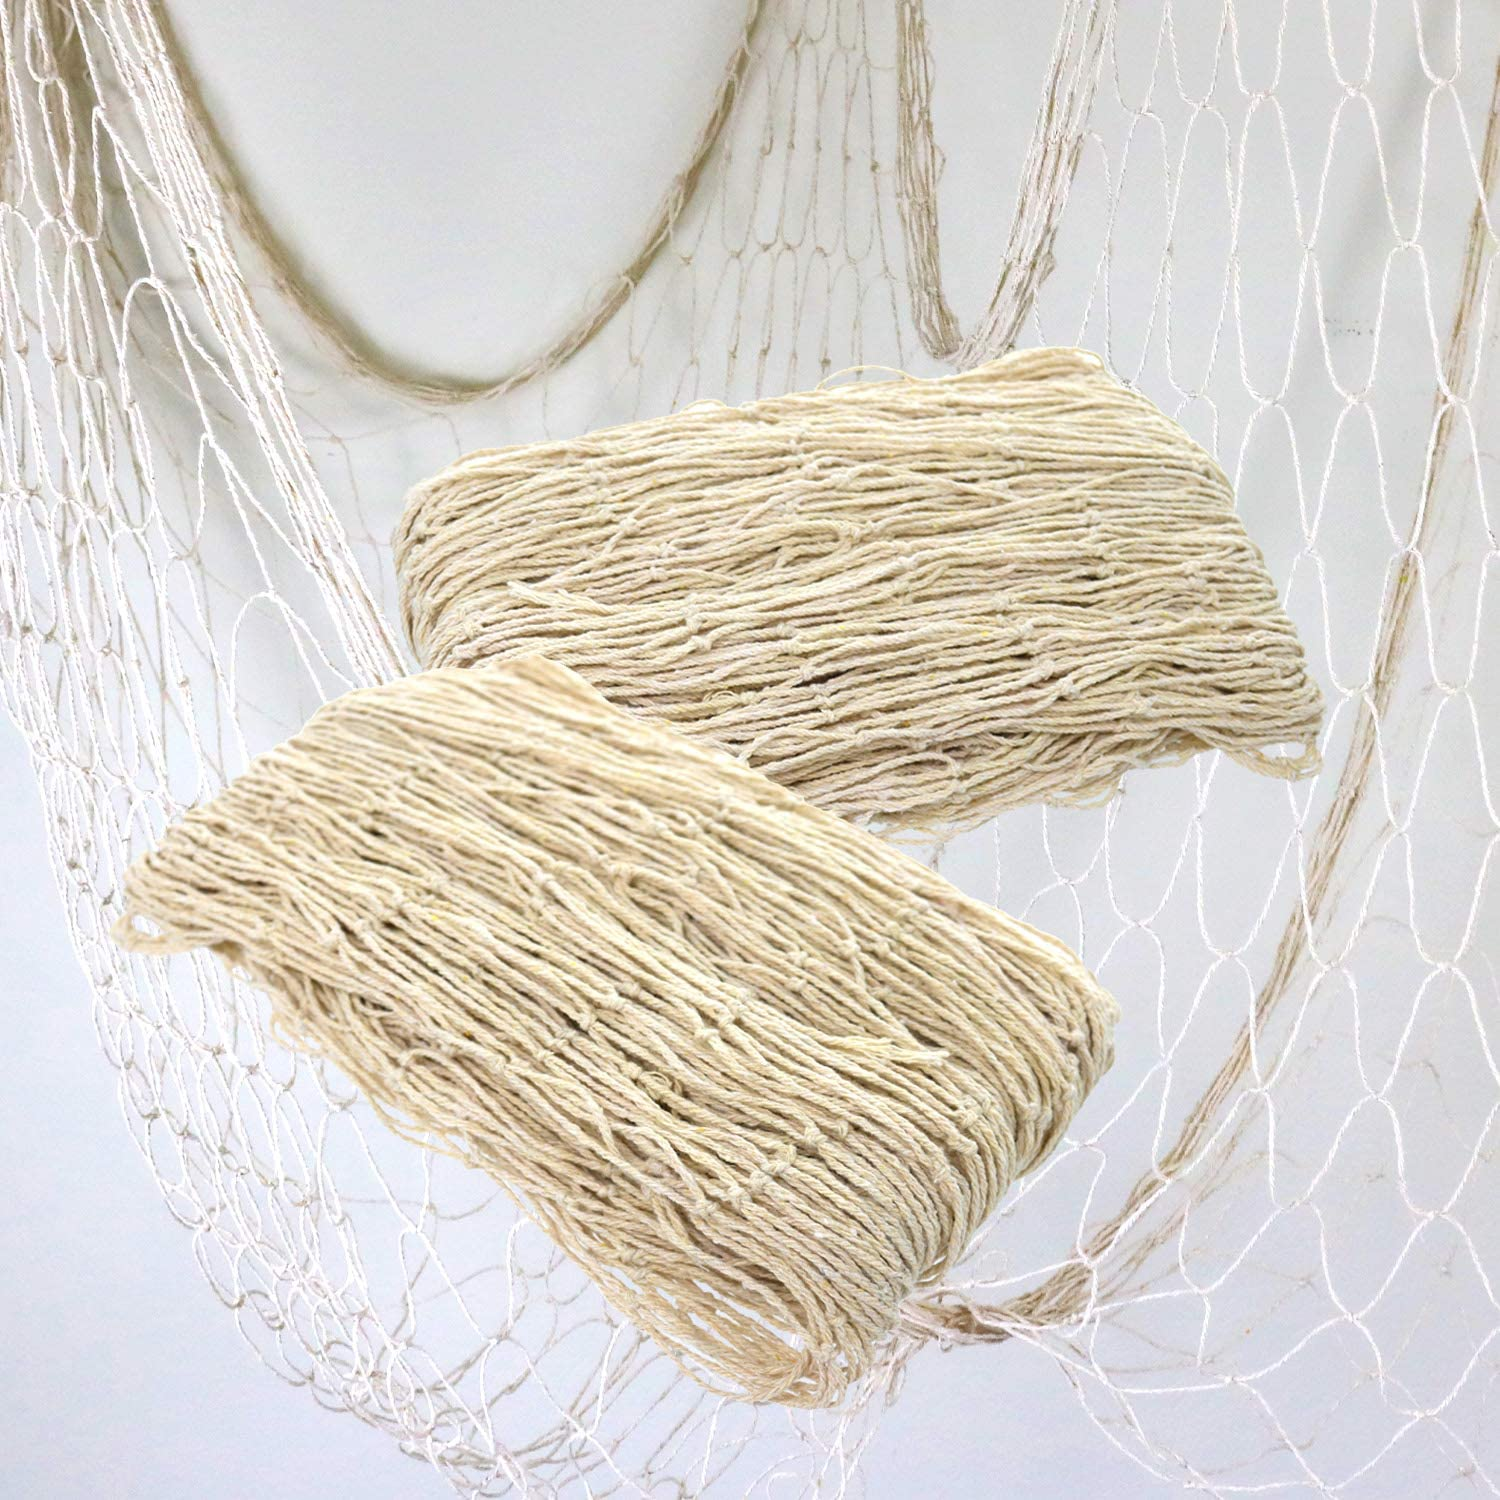 GIFTEXPRESS Pack of 2 Natural Cotton Fish Net Party Decoration Accessory for Hawaiian, Mediterranean, Fishman, Nautical, Mermaid, Pirate, Fishnet and Beach Party Décor, 14 ft x 4 ft Each